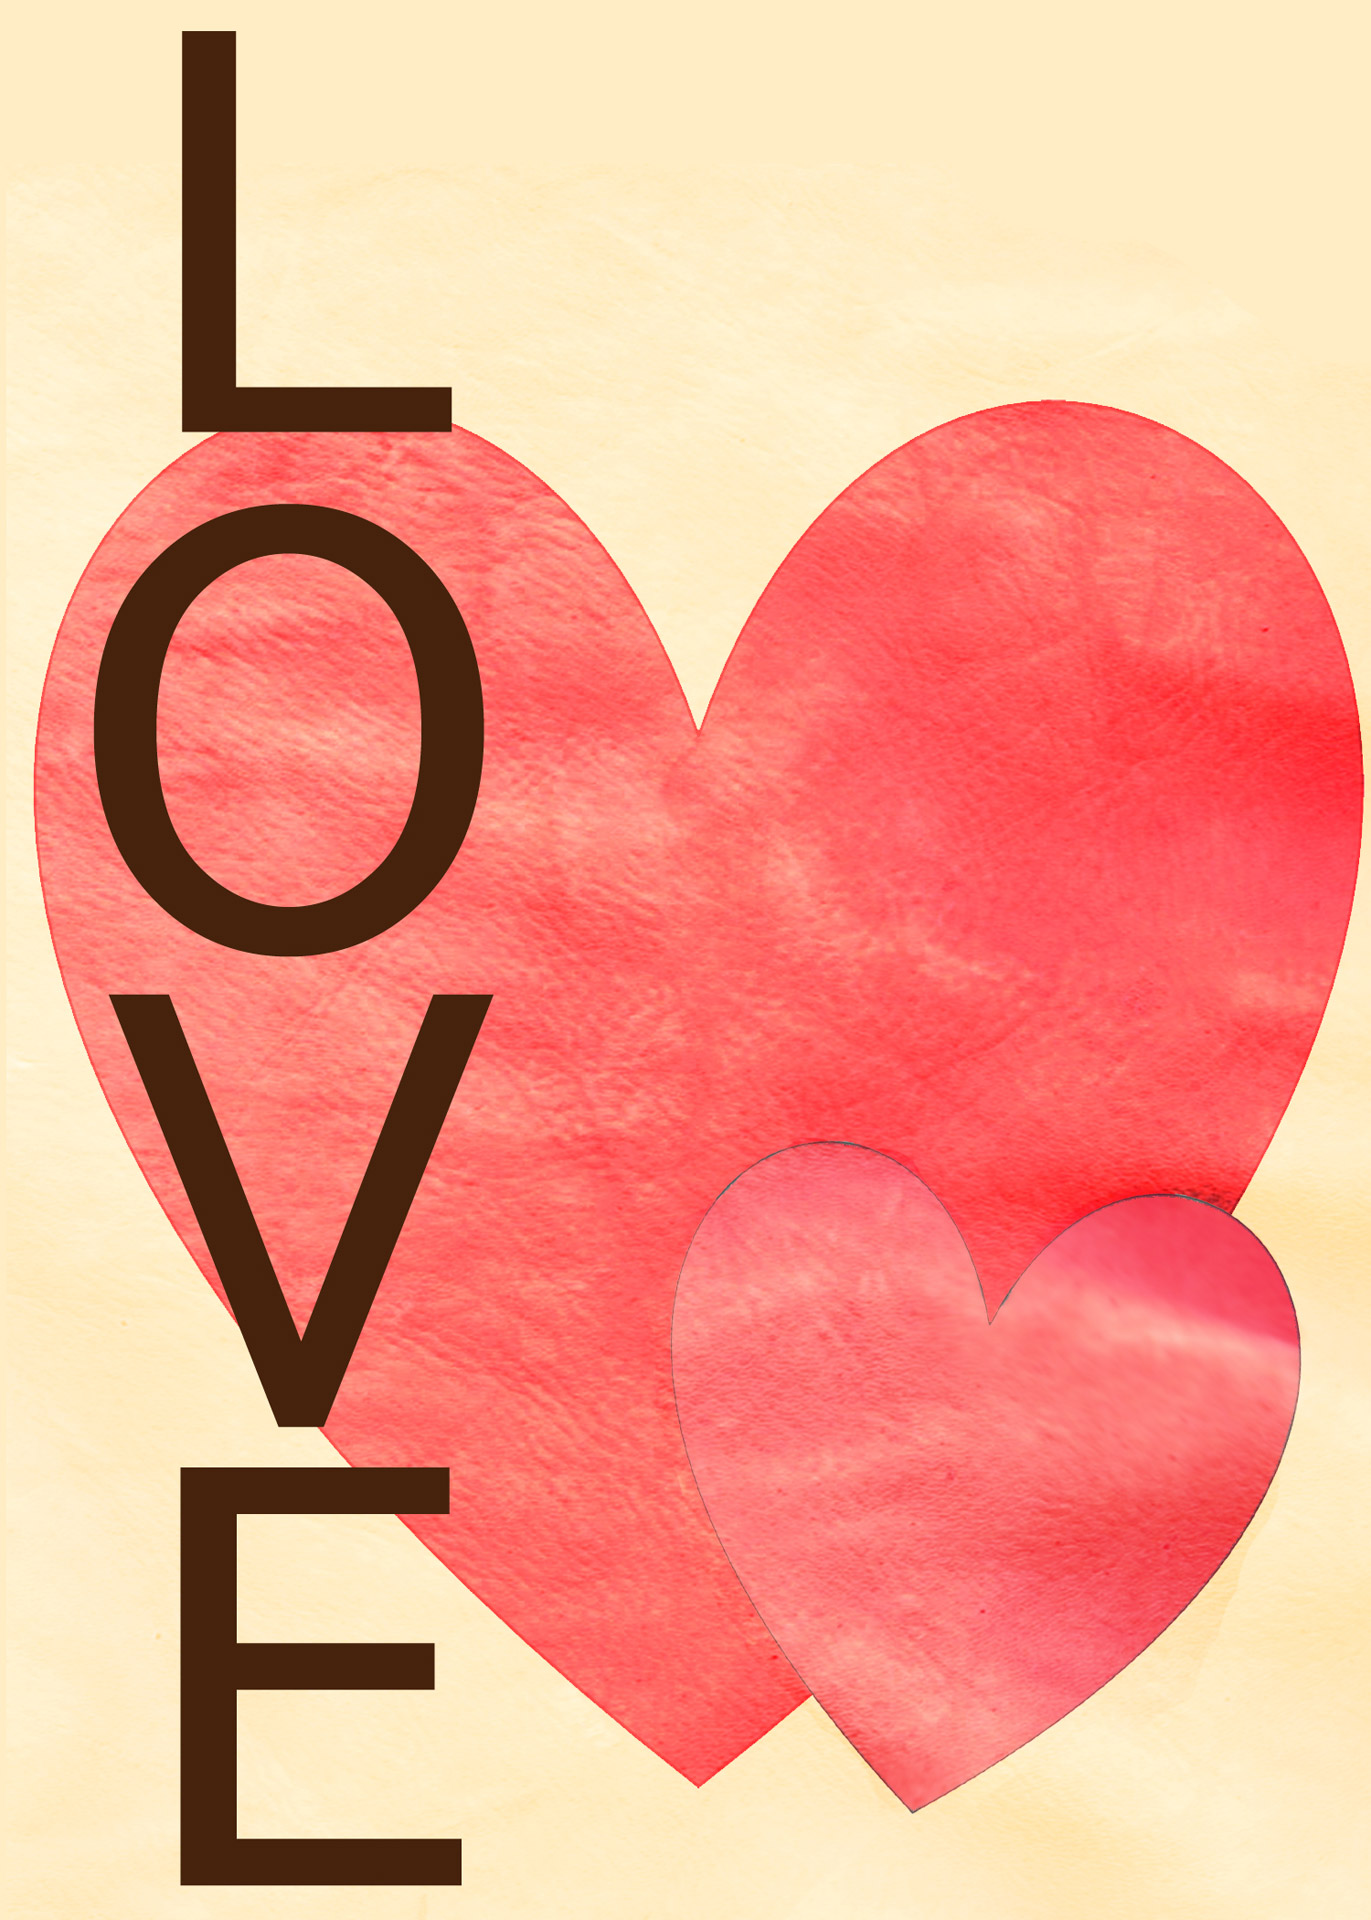 Love Valentines Day Card Free Stock Photo Public Domain